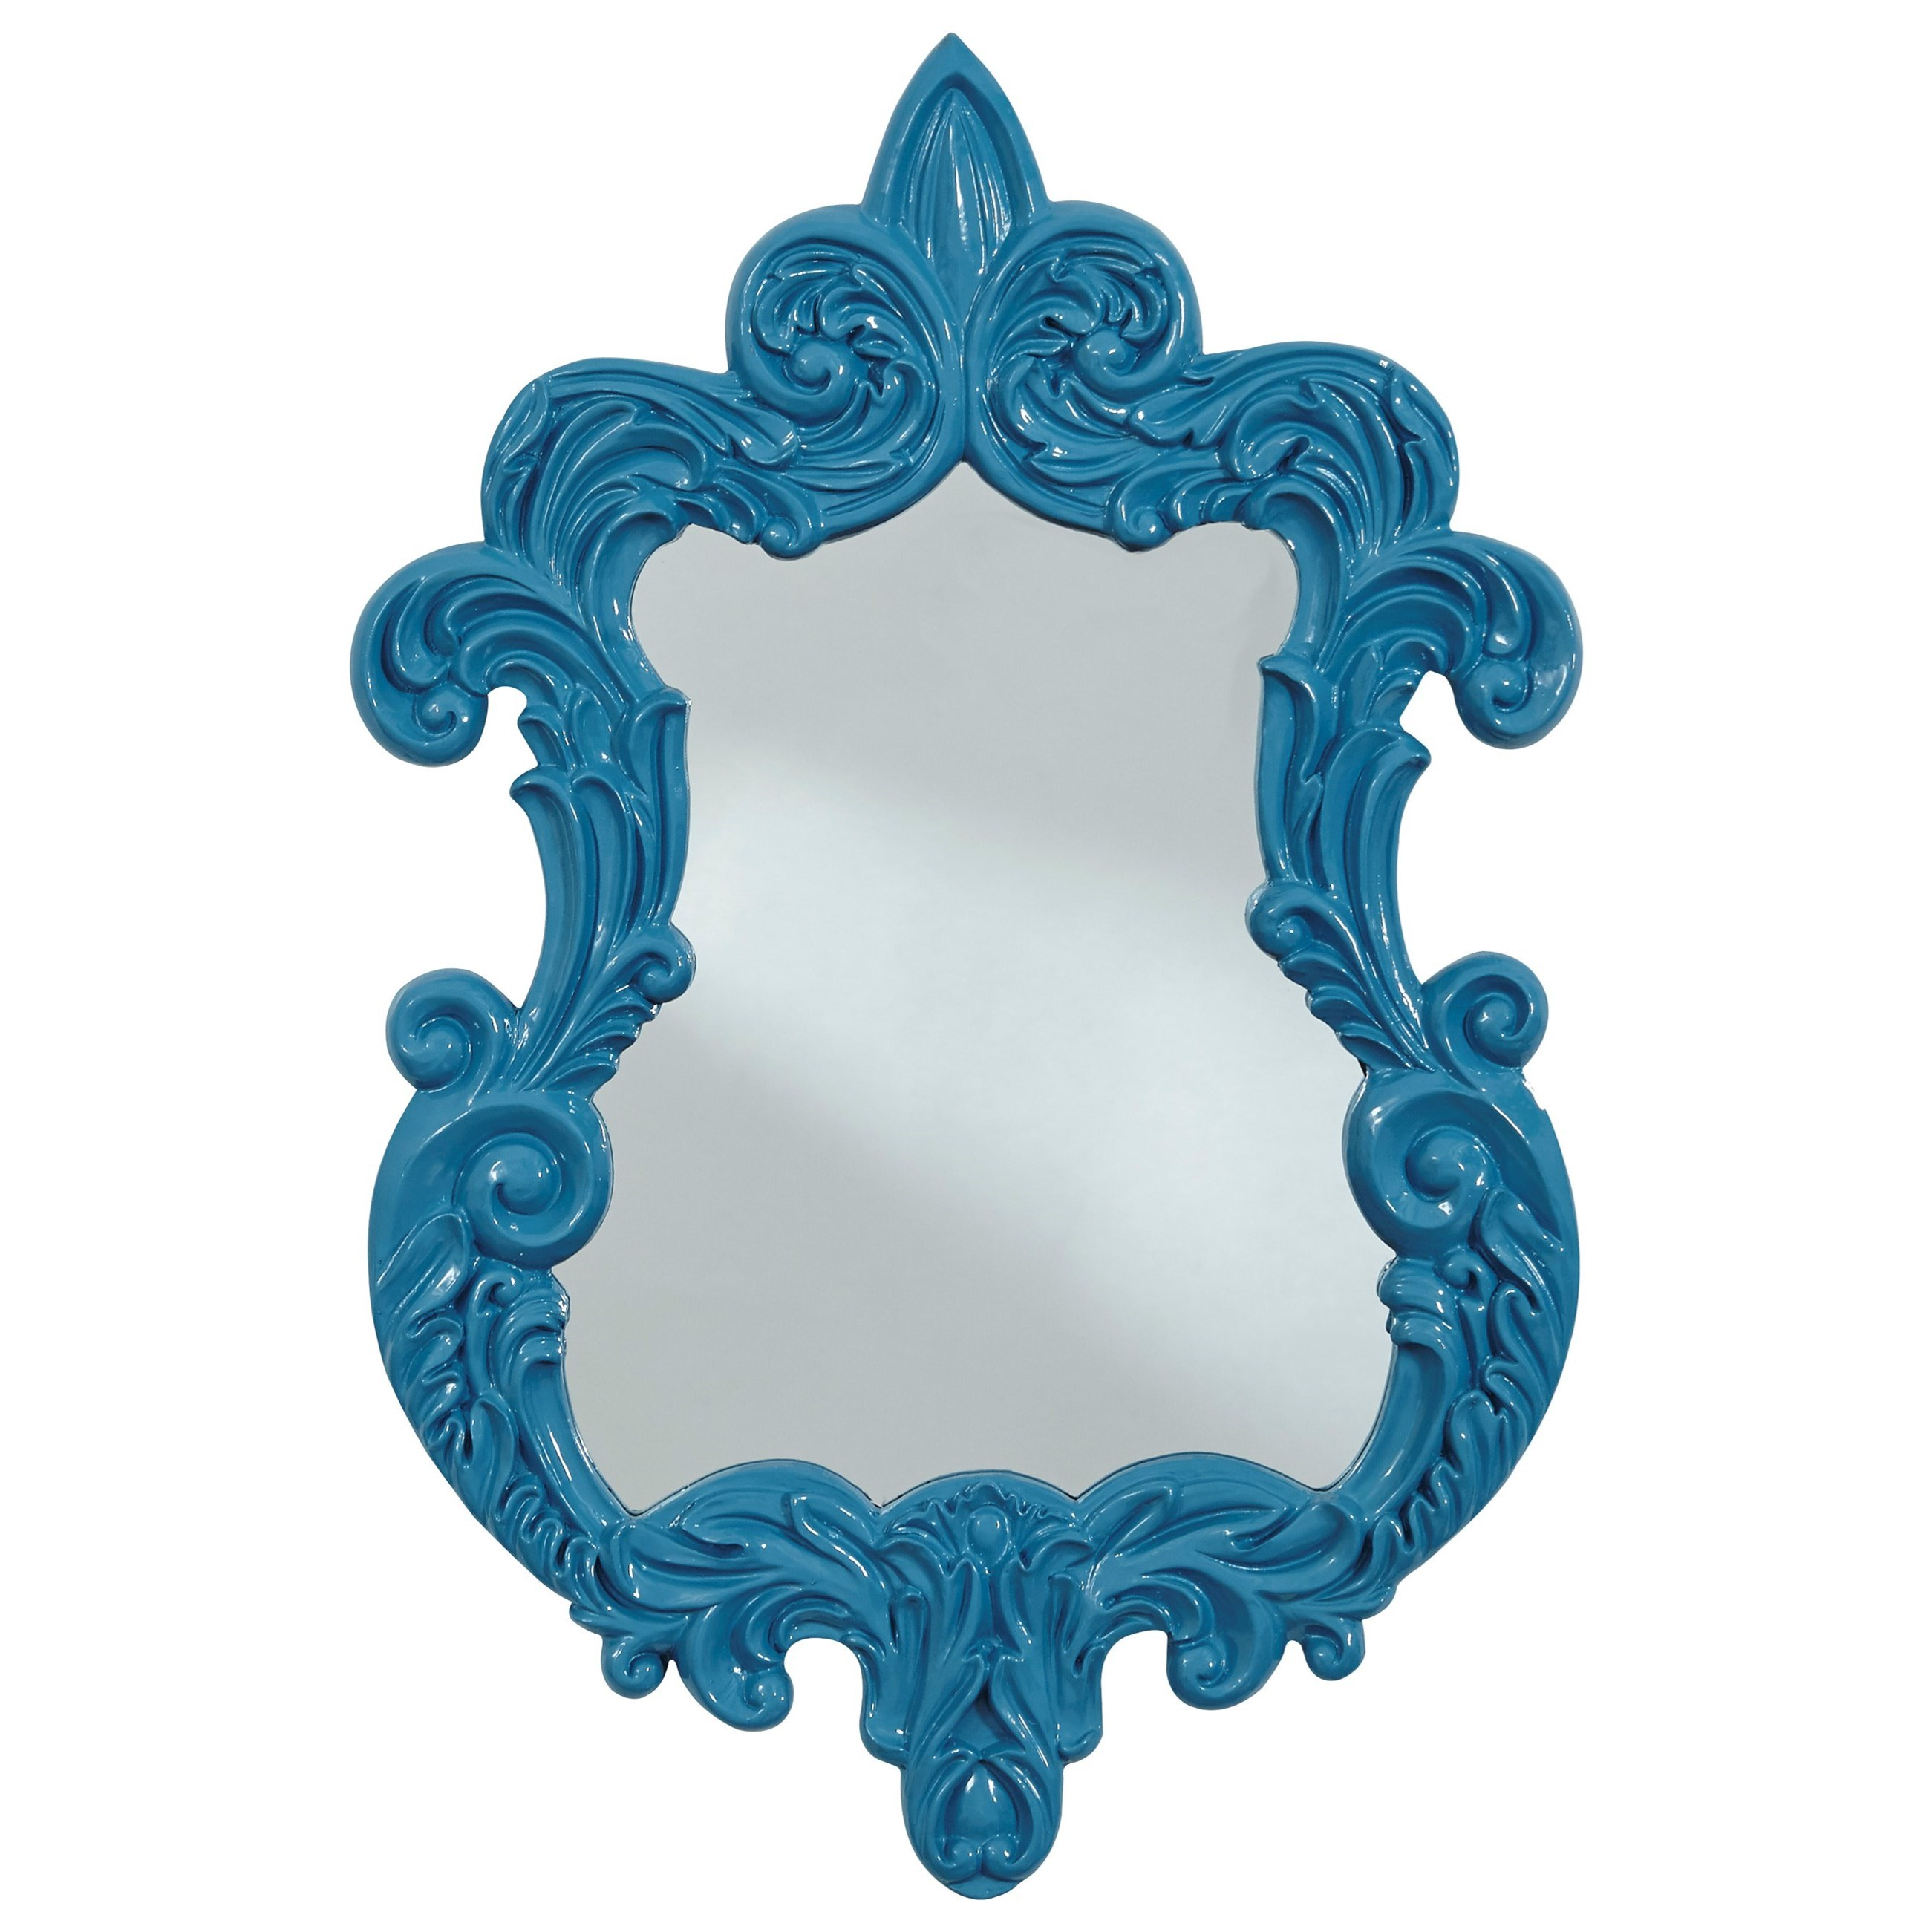 Signature Design by Ashley Accent Mirrors Diza Blue Accent Mirror - Item Number: A8010101